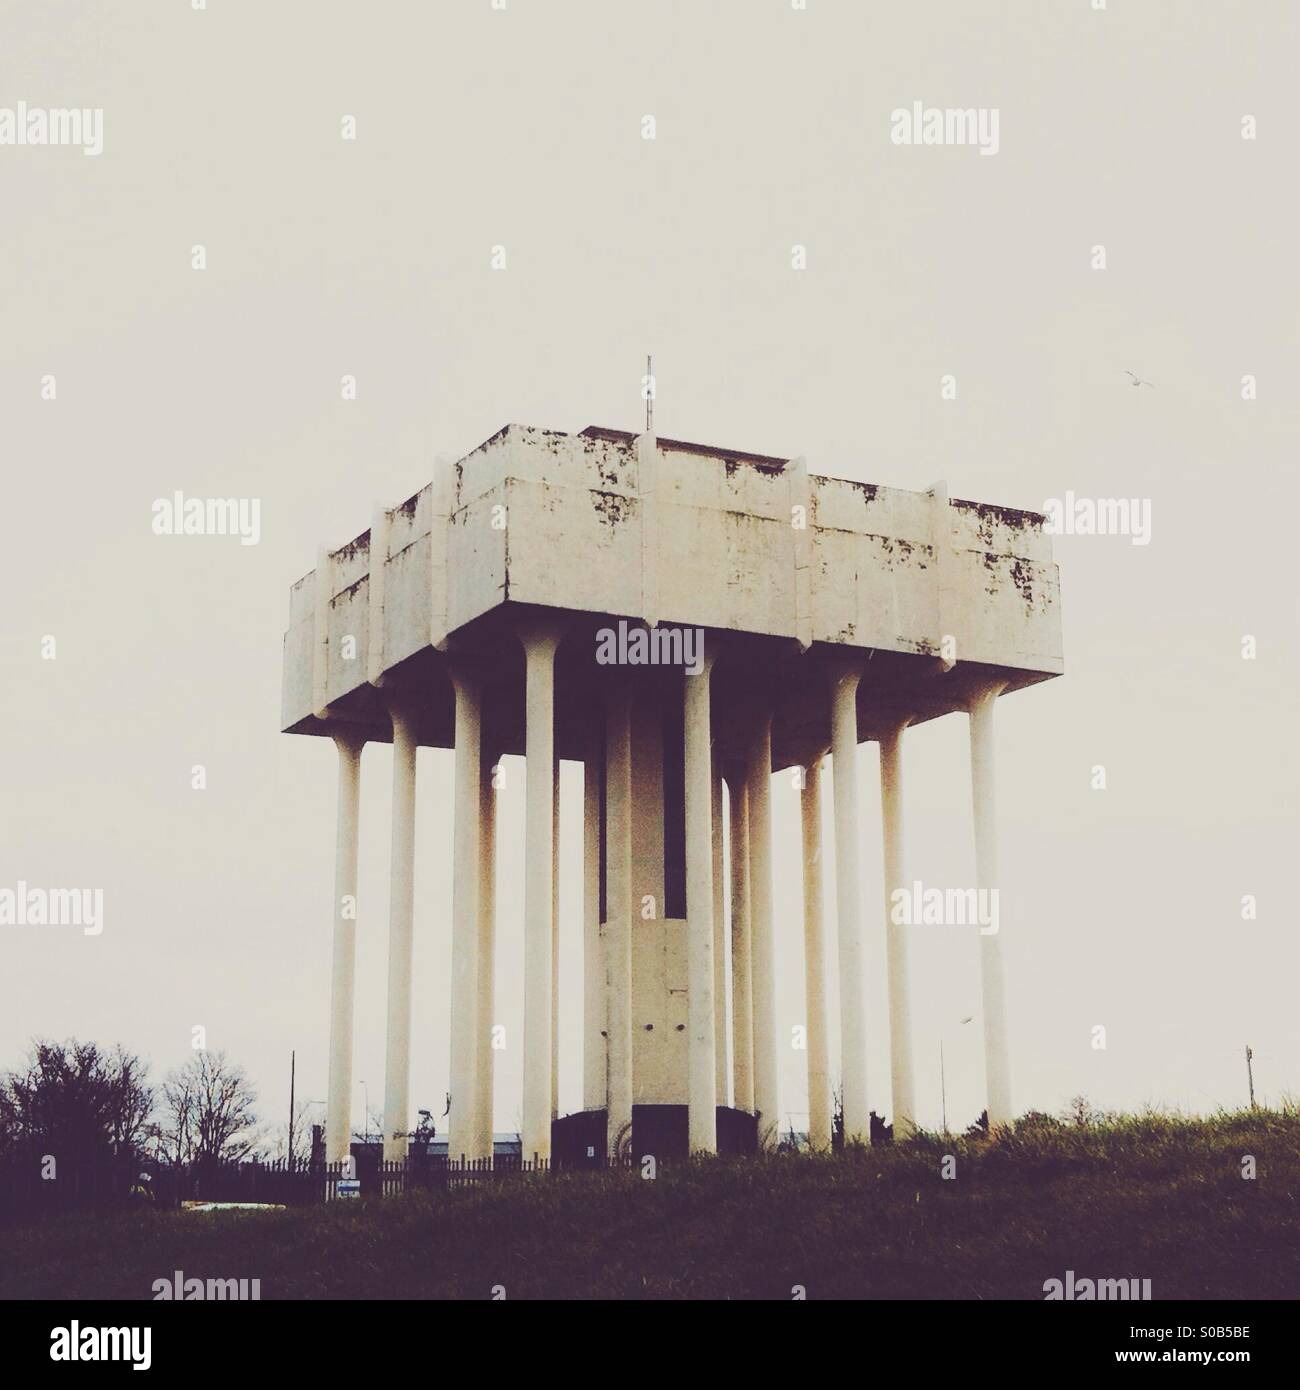 Water tower in muted tones and flat contrast. - Stock Image